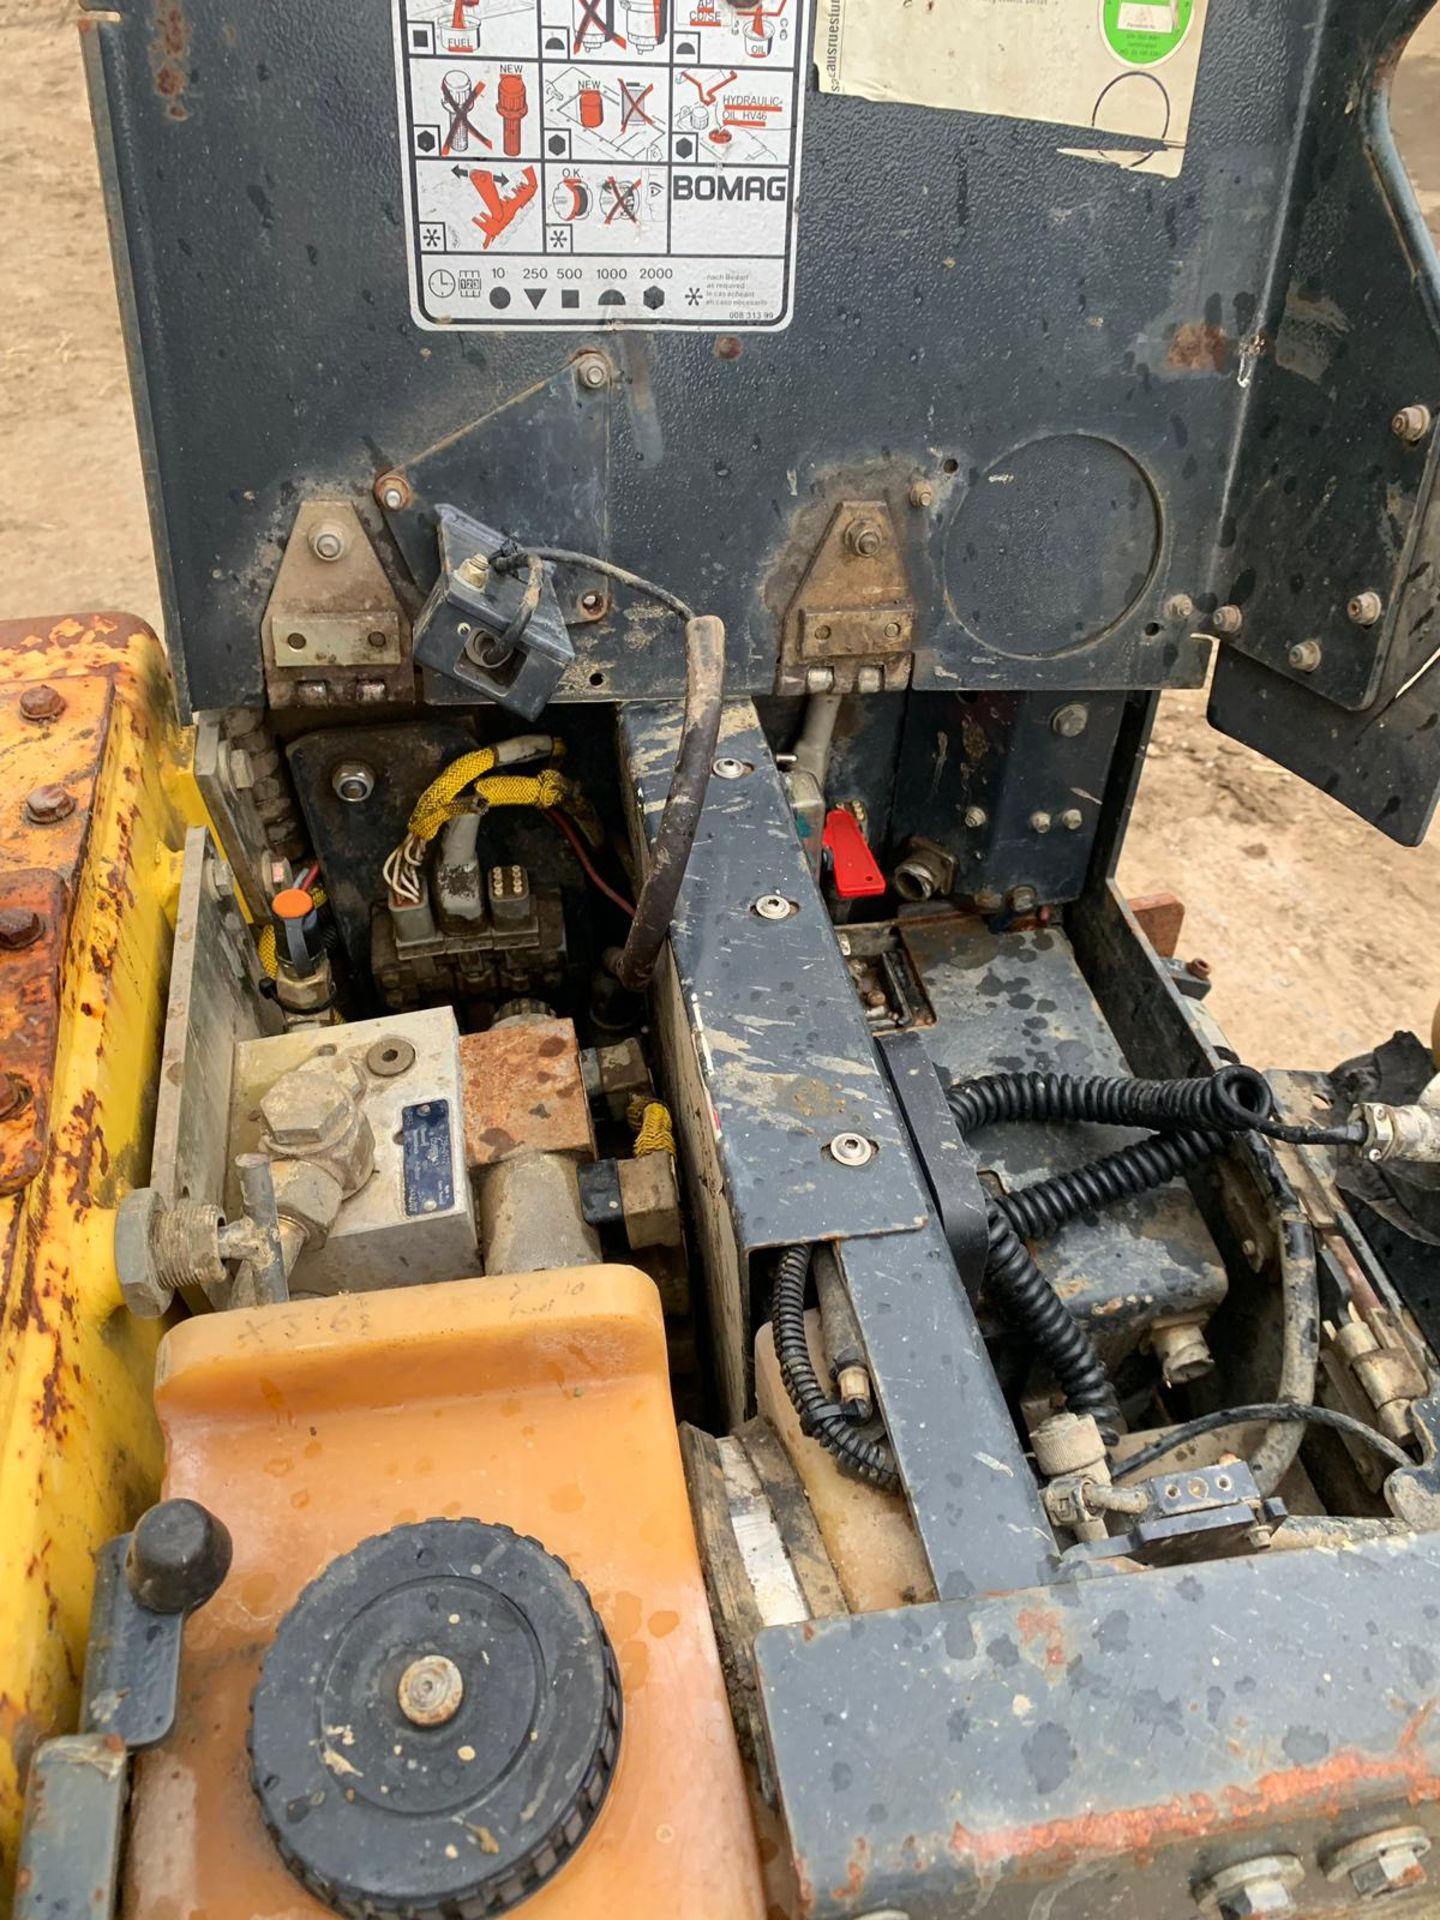 Lot 46 - 2005 BOMAG BMP 851 REMOTE CONTROL MULTI-PURPOSE WALK-BEHIND COMPACTOR, POWER 13.8 KW *PLUS VAT*